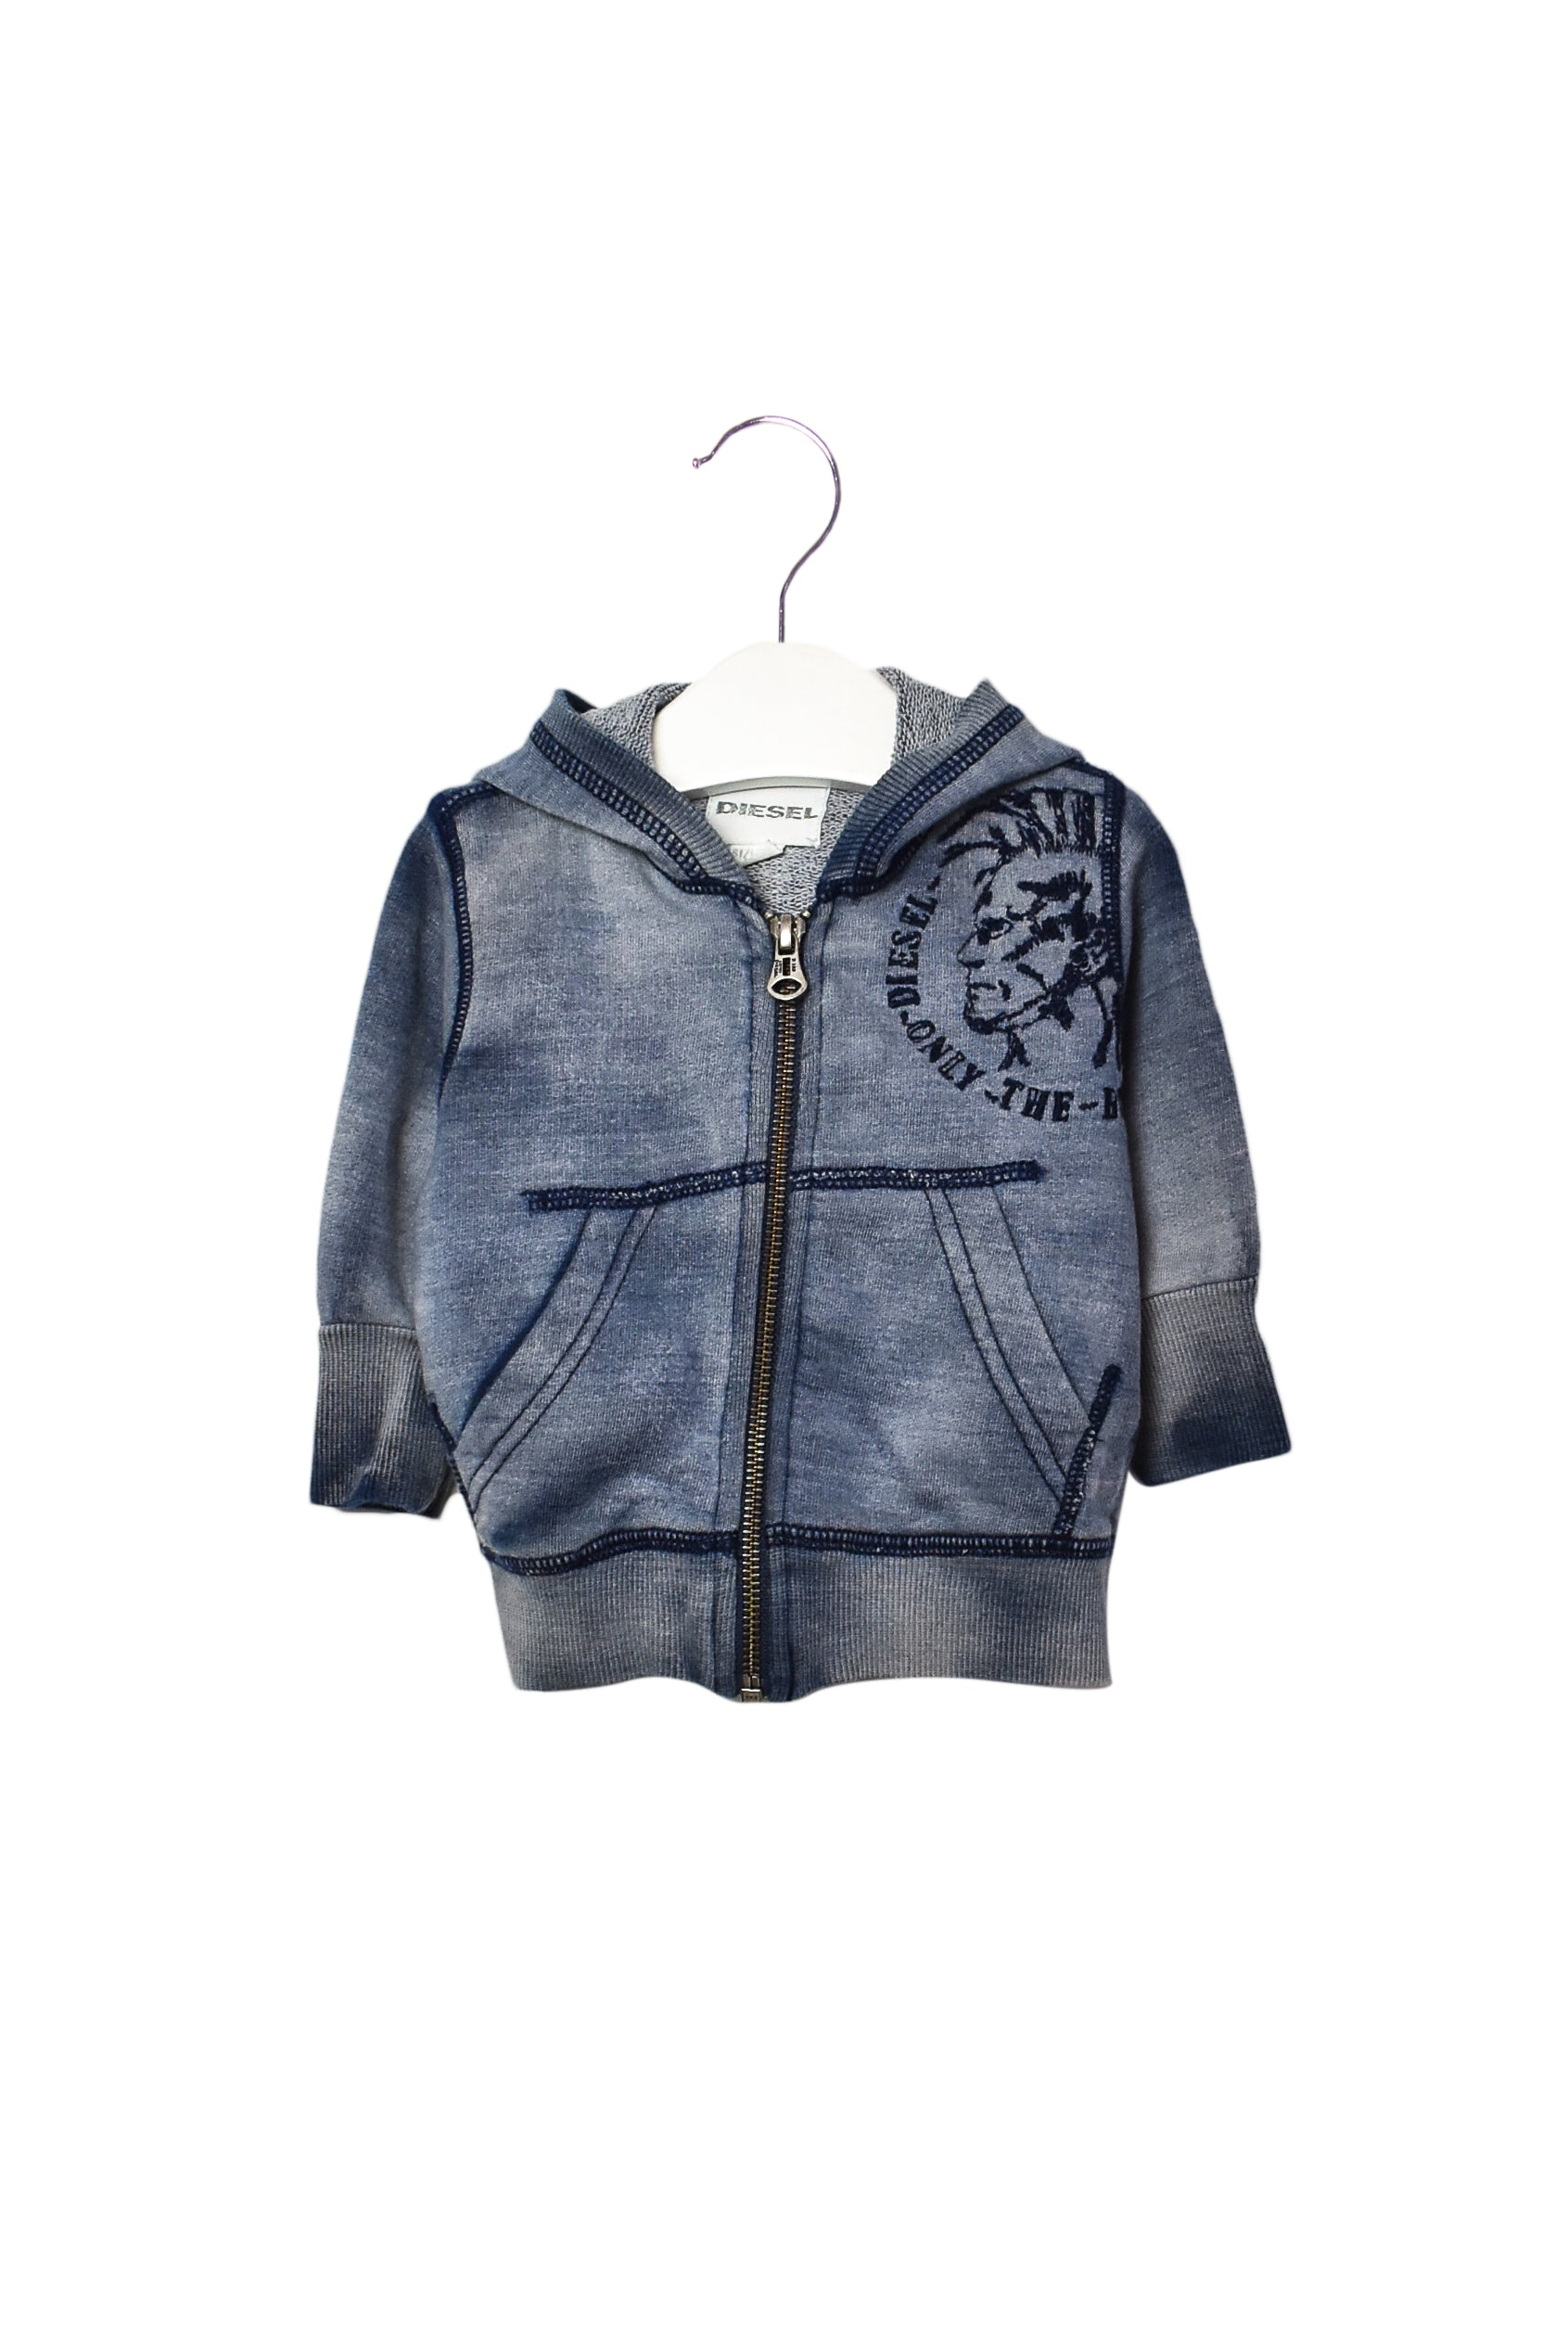 10008637 Diesel Baby~Sweatshirt 6M at Retykle